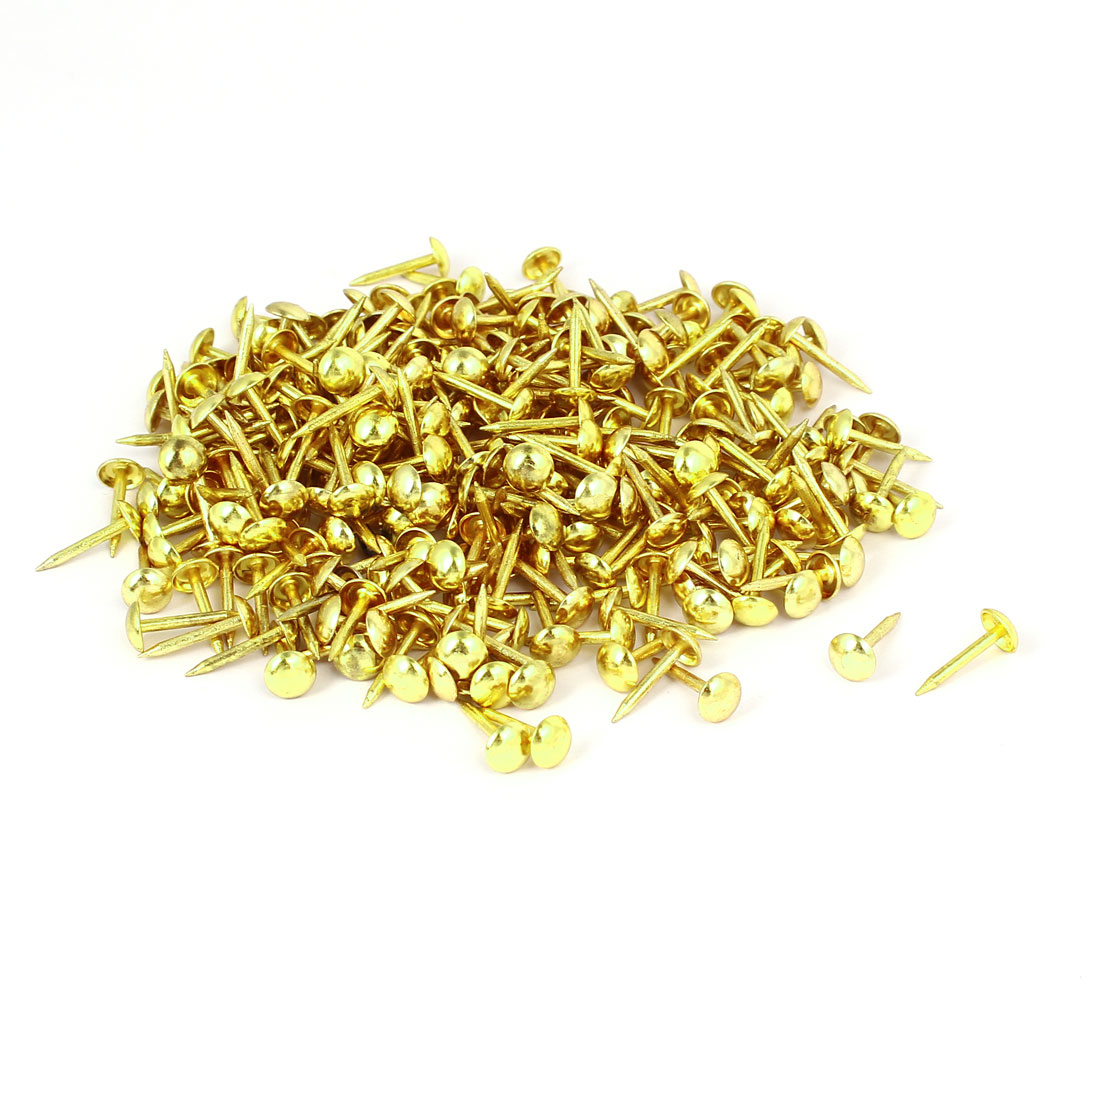 Home Furniture Upholstery Thumb Tack Nail Push Pin Gold Tone 6mm x 14mm 300pcs